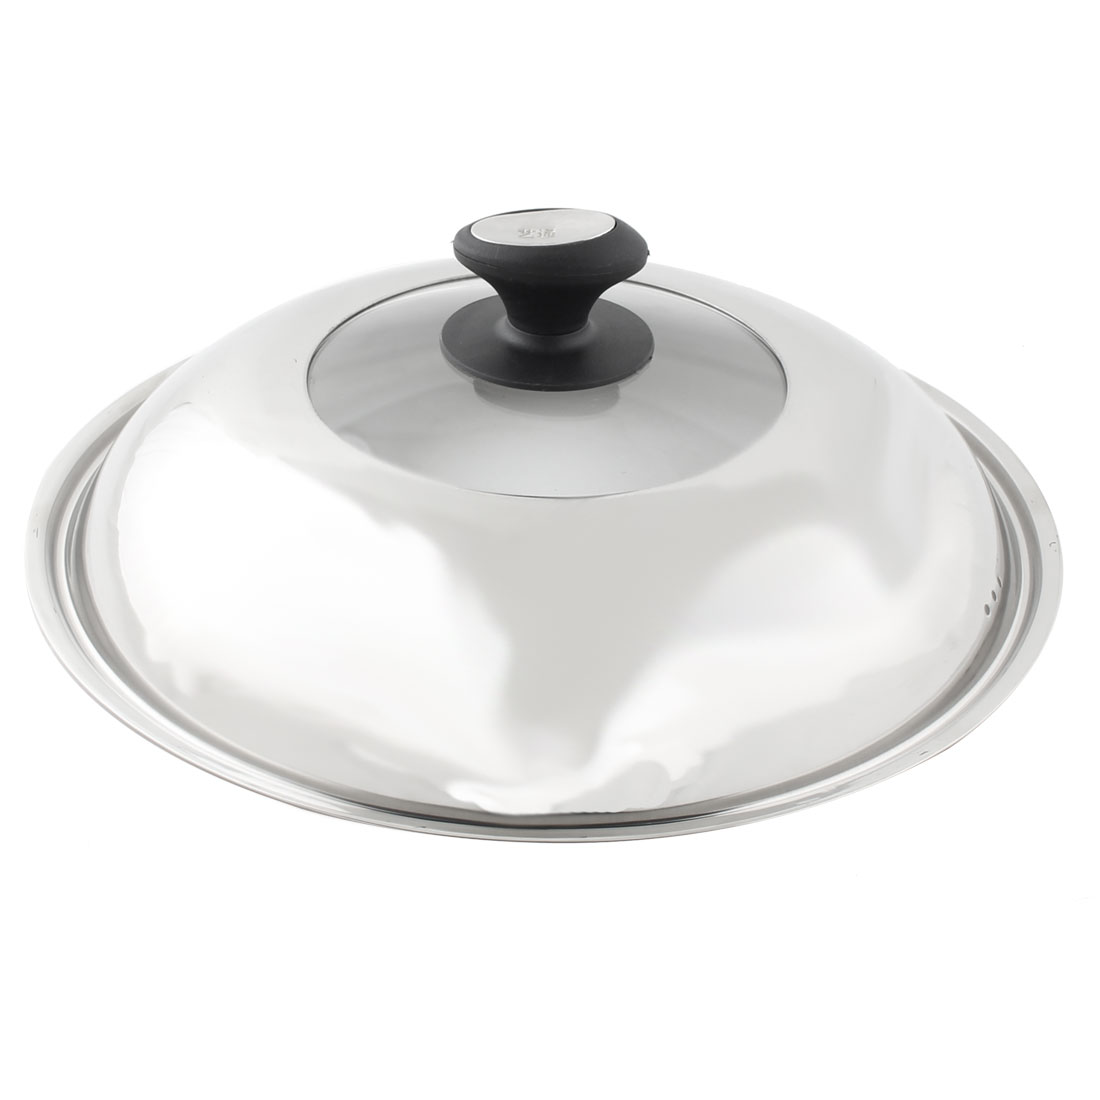 Kitchen Glass Top Stainless Steel Cooker Pot Skillet Frying Pan Knob Lid Cover 32.5cm Dia